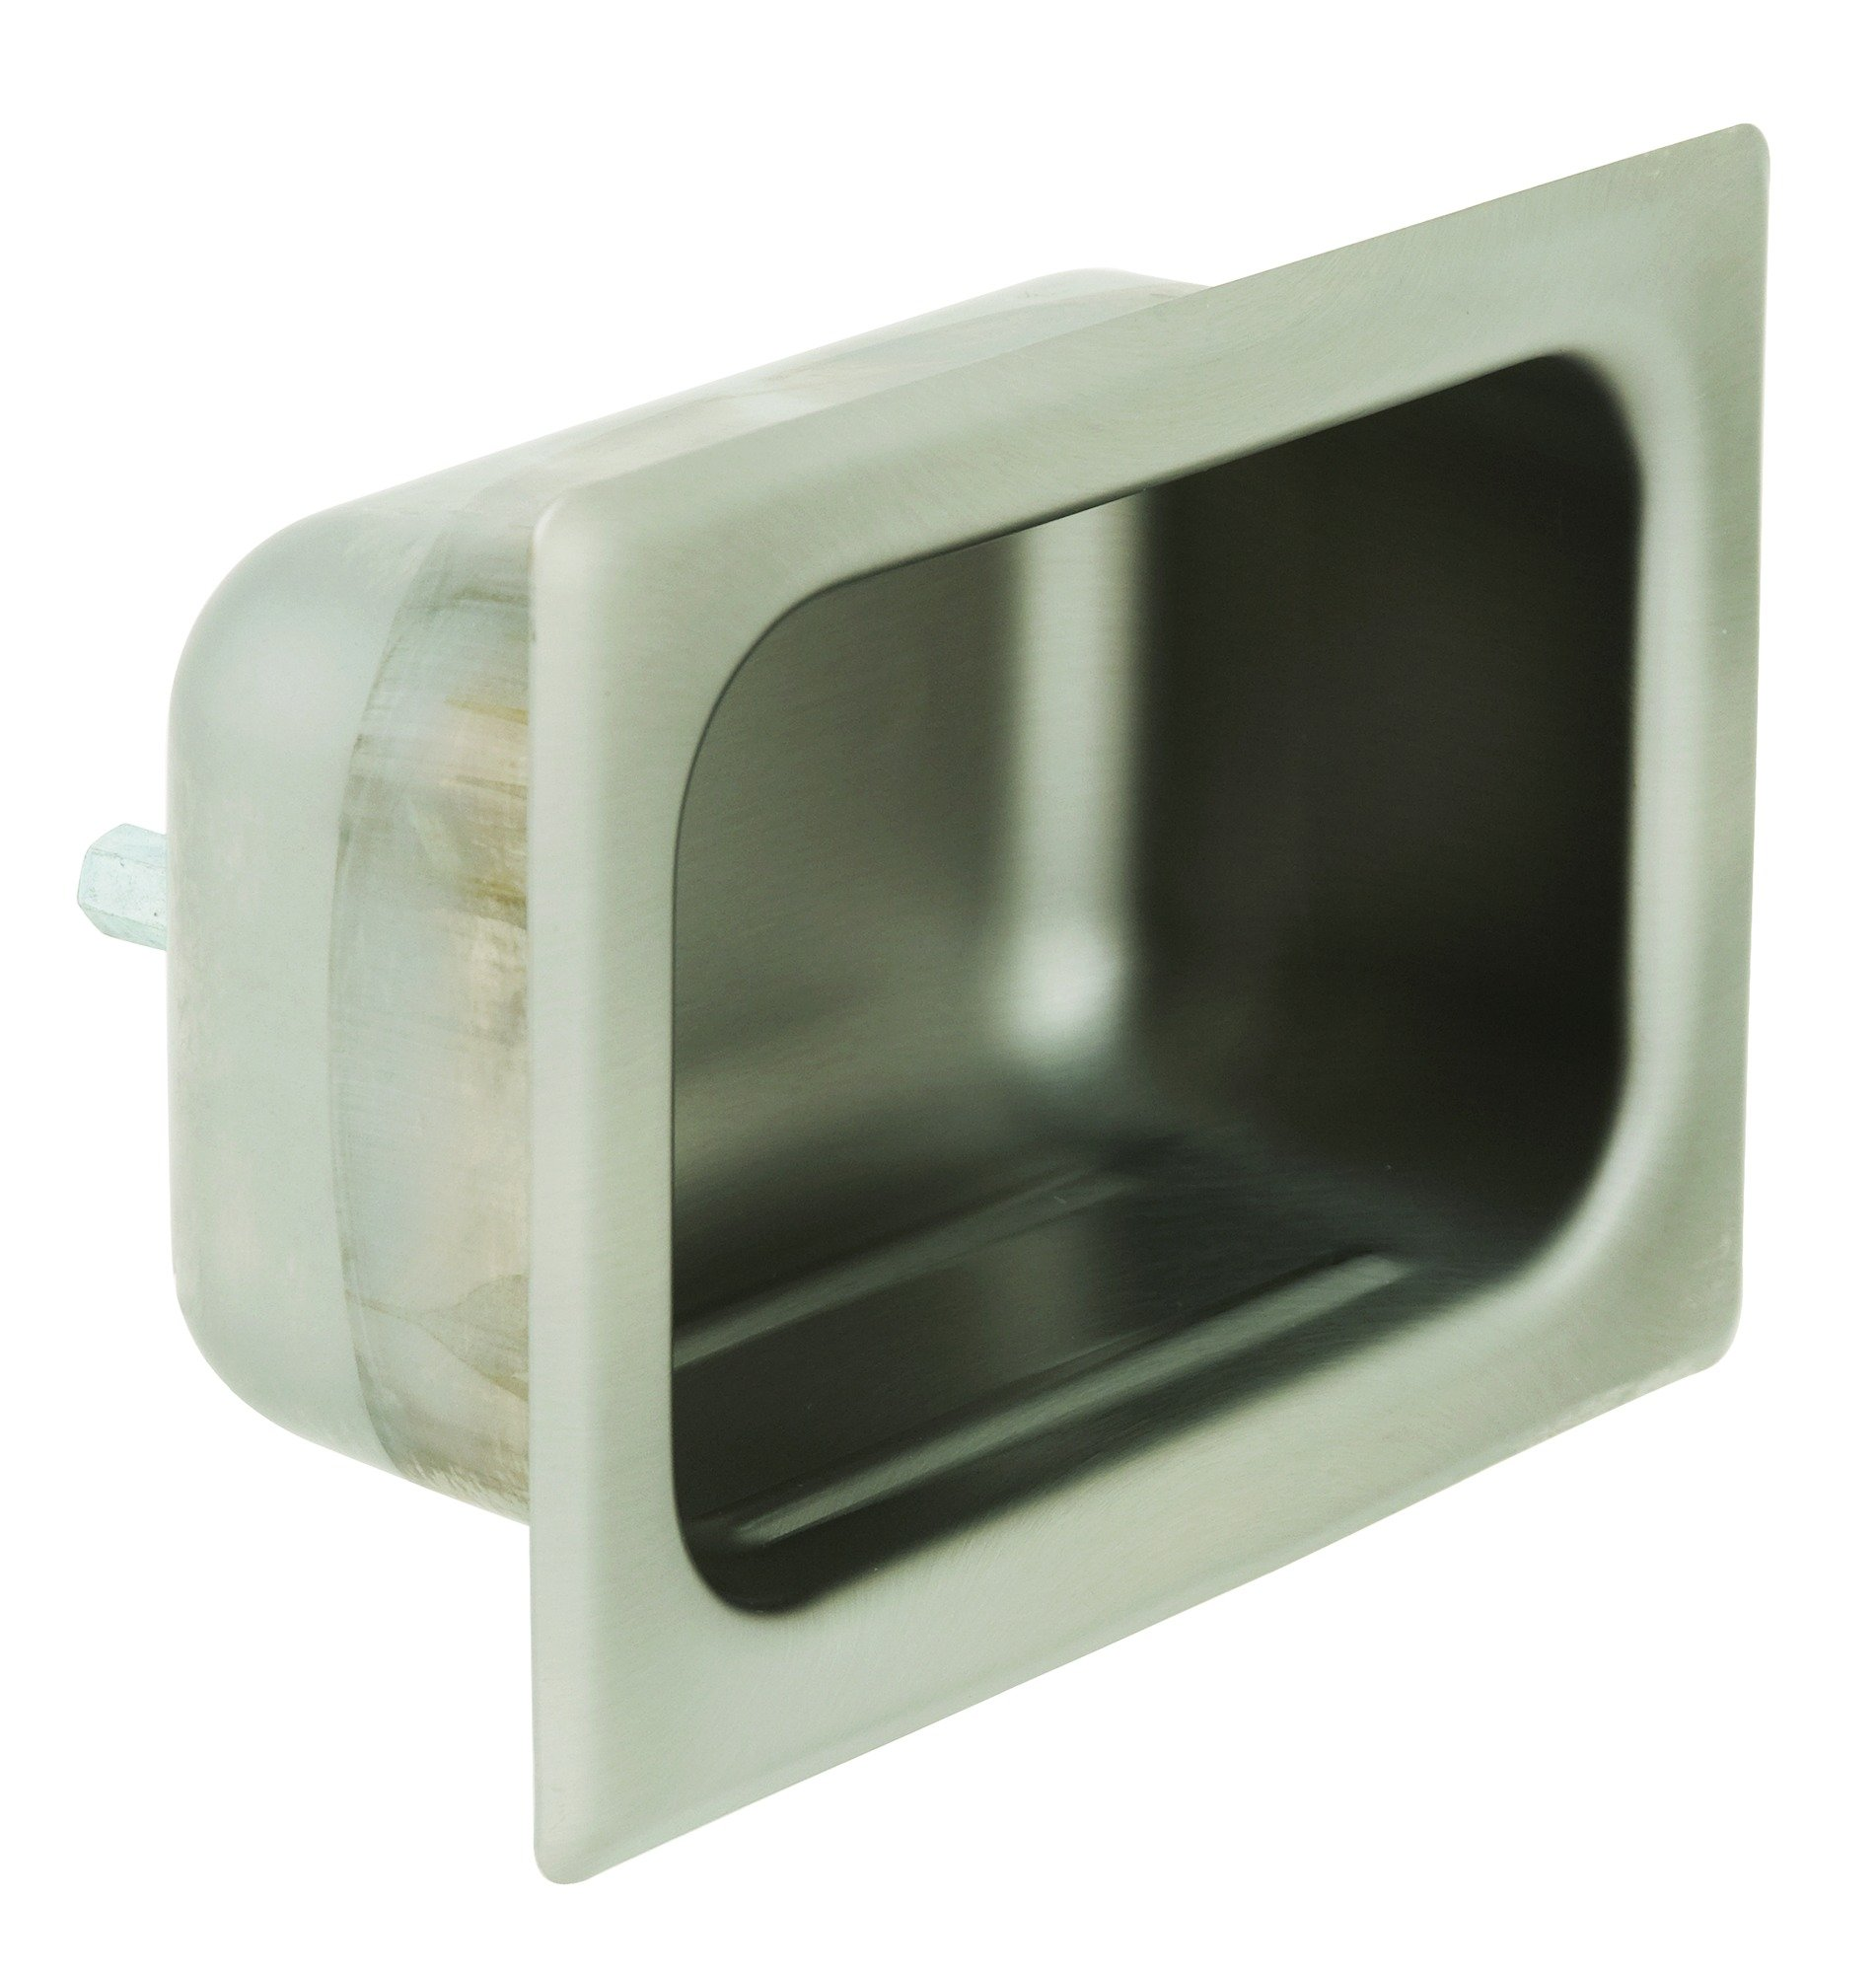 Bradley Ligature Resistant Soap Dish SA16 | Accurate Door & Hardware, Inc.